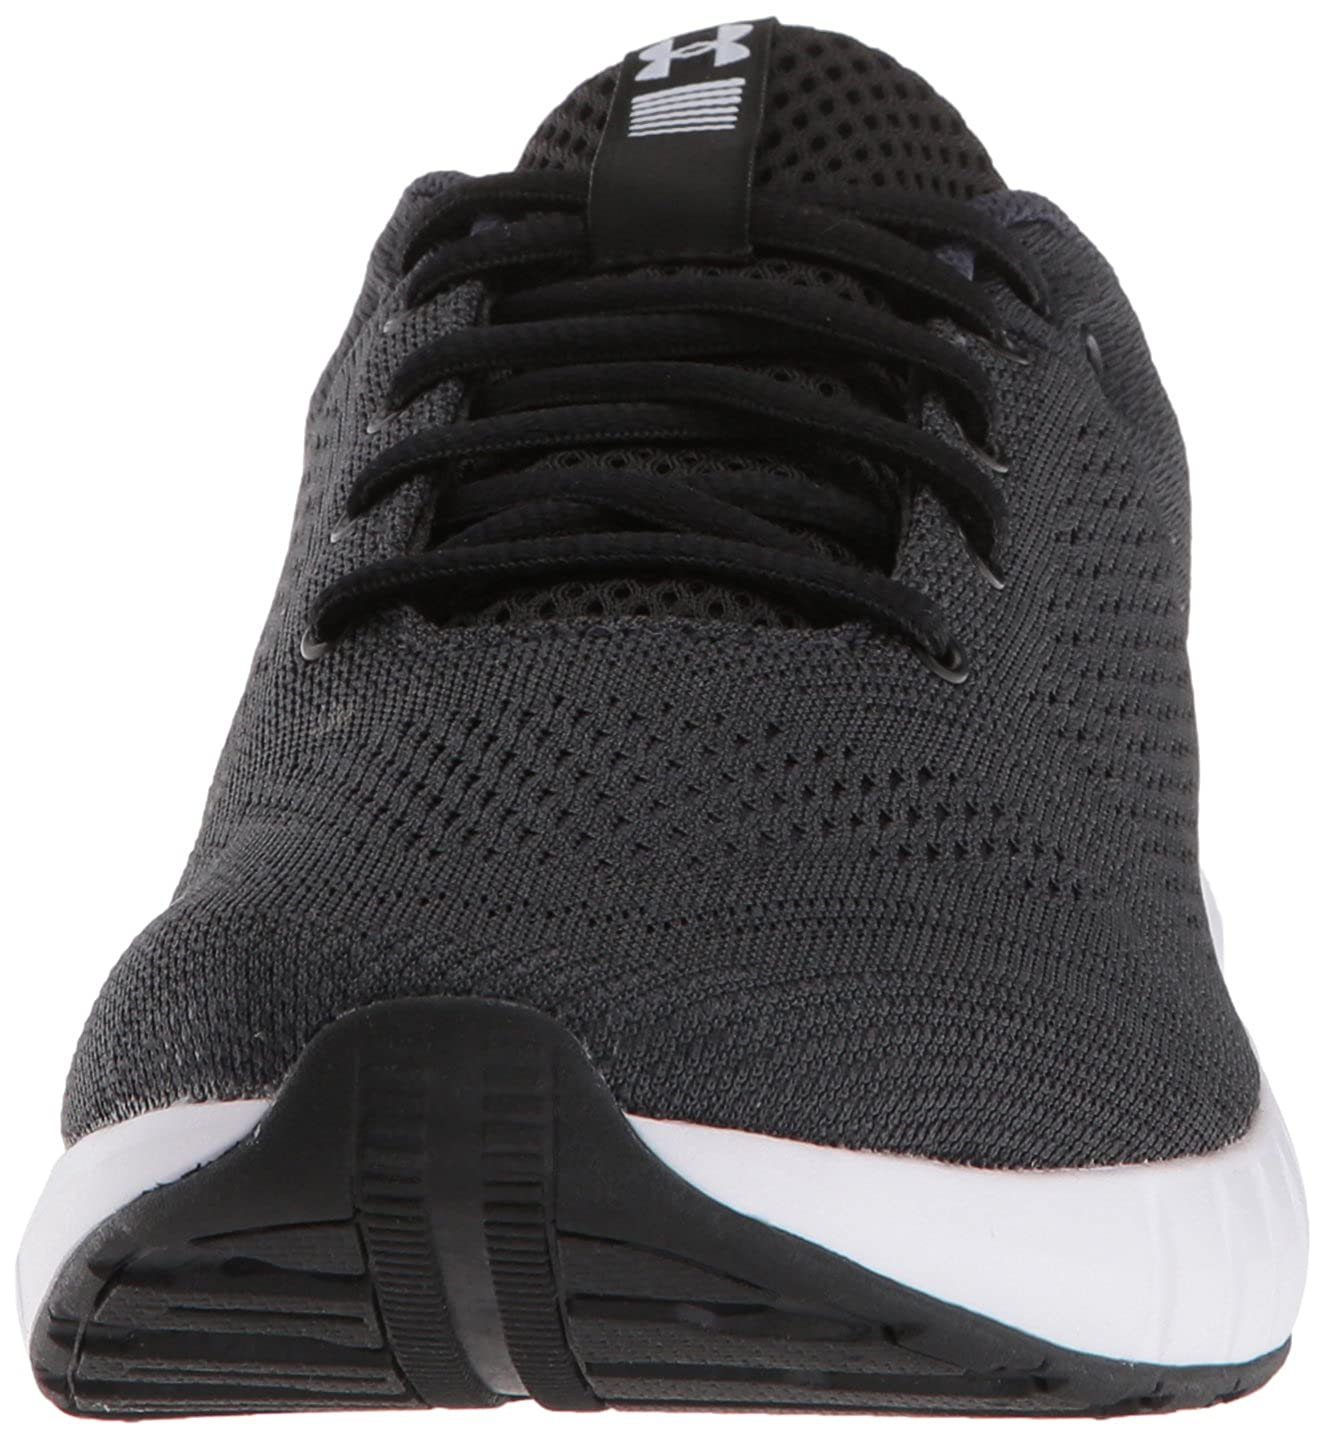 Under Armour Women s UA Micro G Pursuit D Running Shoes